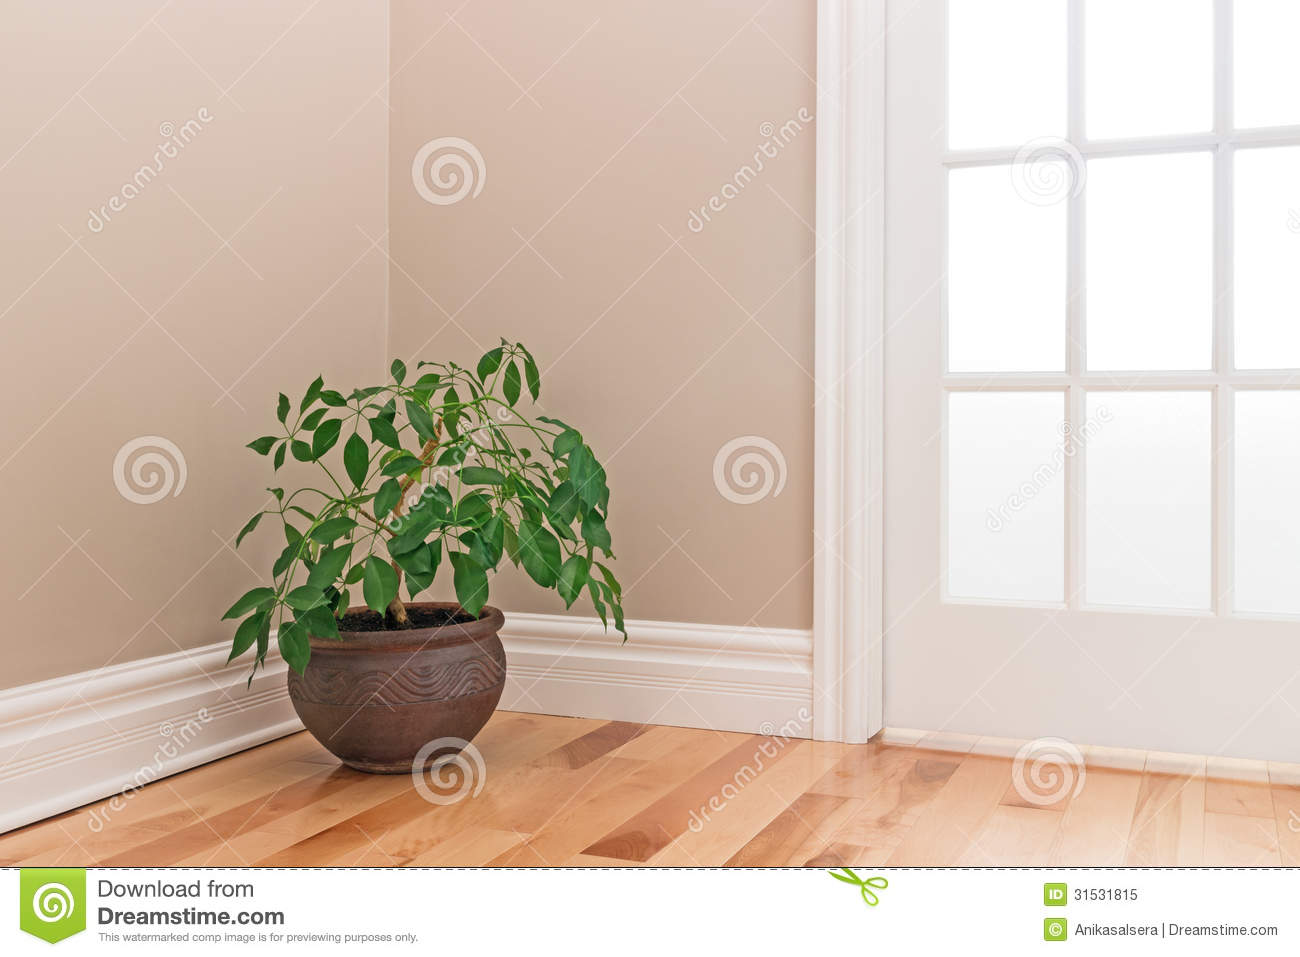 Exceptional Green Plant Decorating A Room Corner